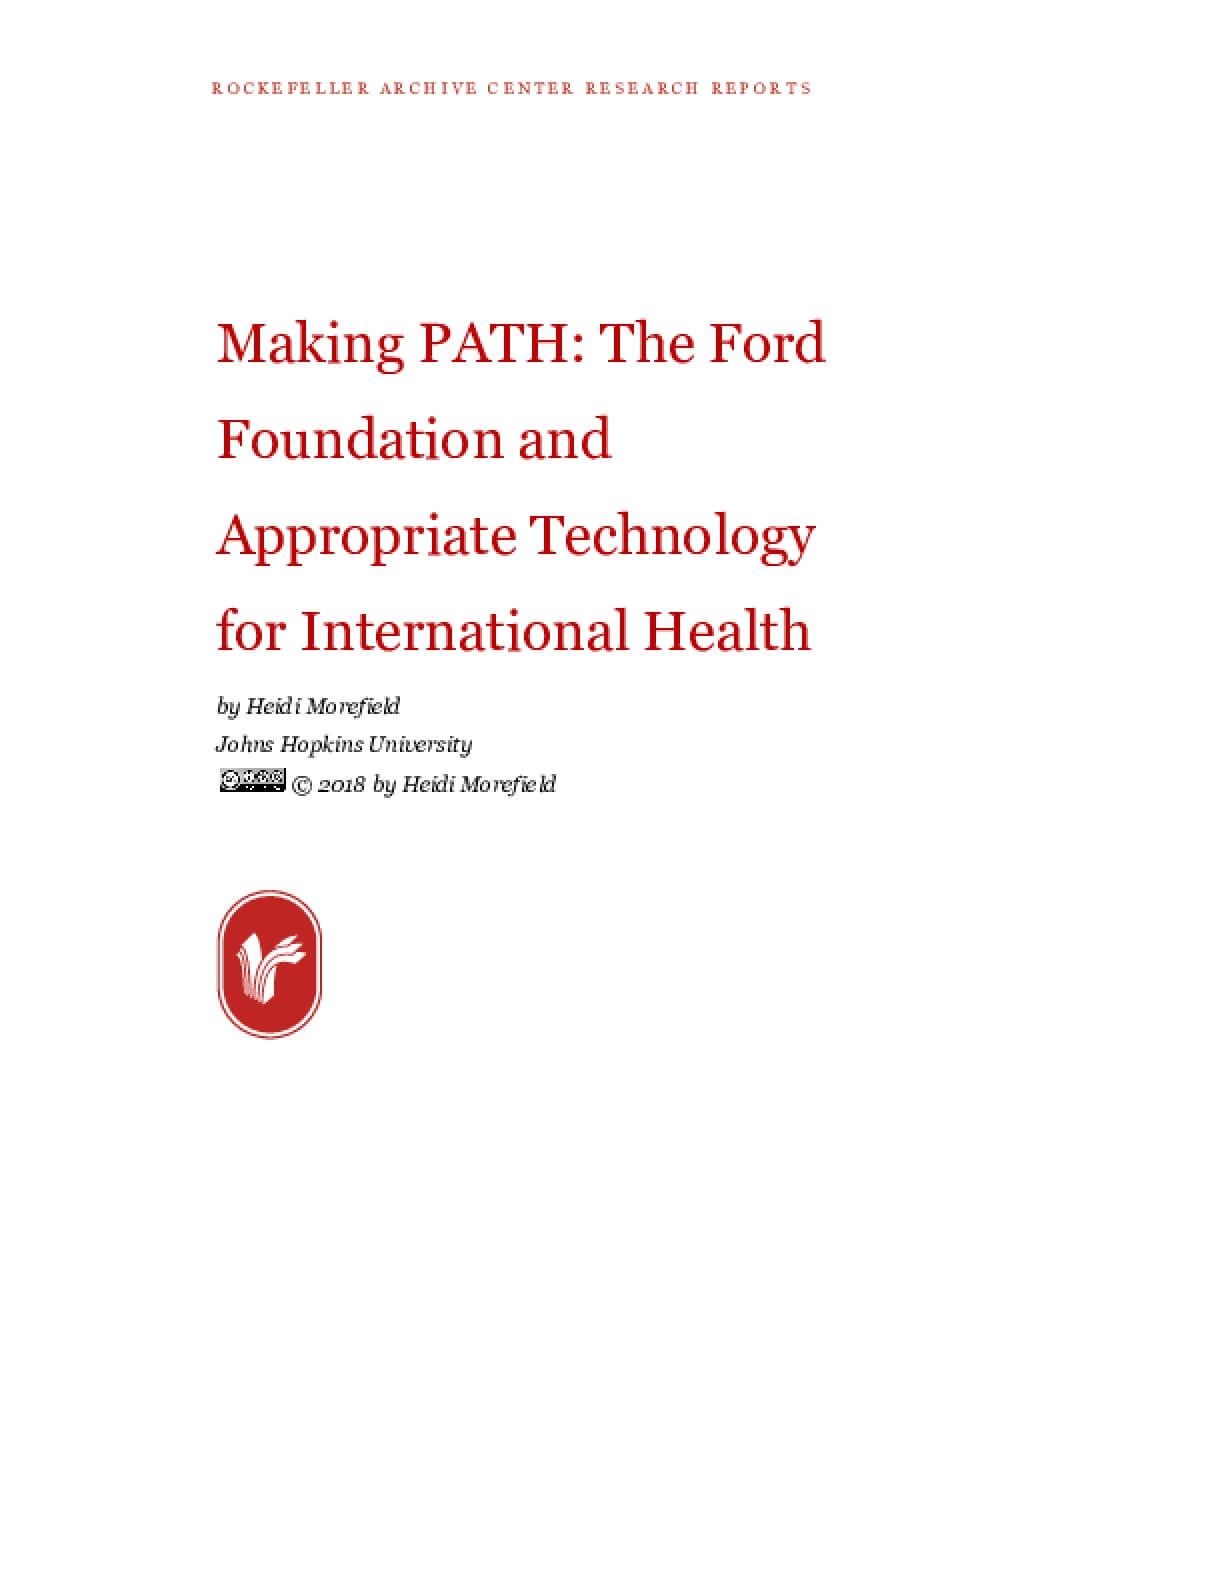 Making PATH: The Ford Foundation and Appropriate Technology for International Health